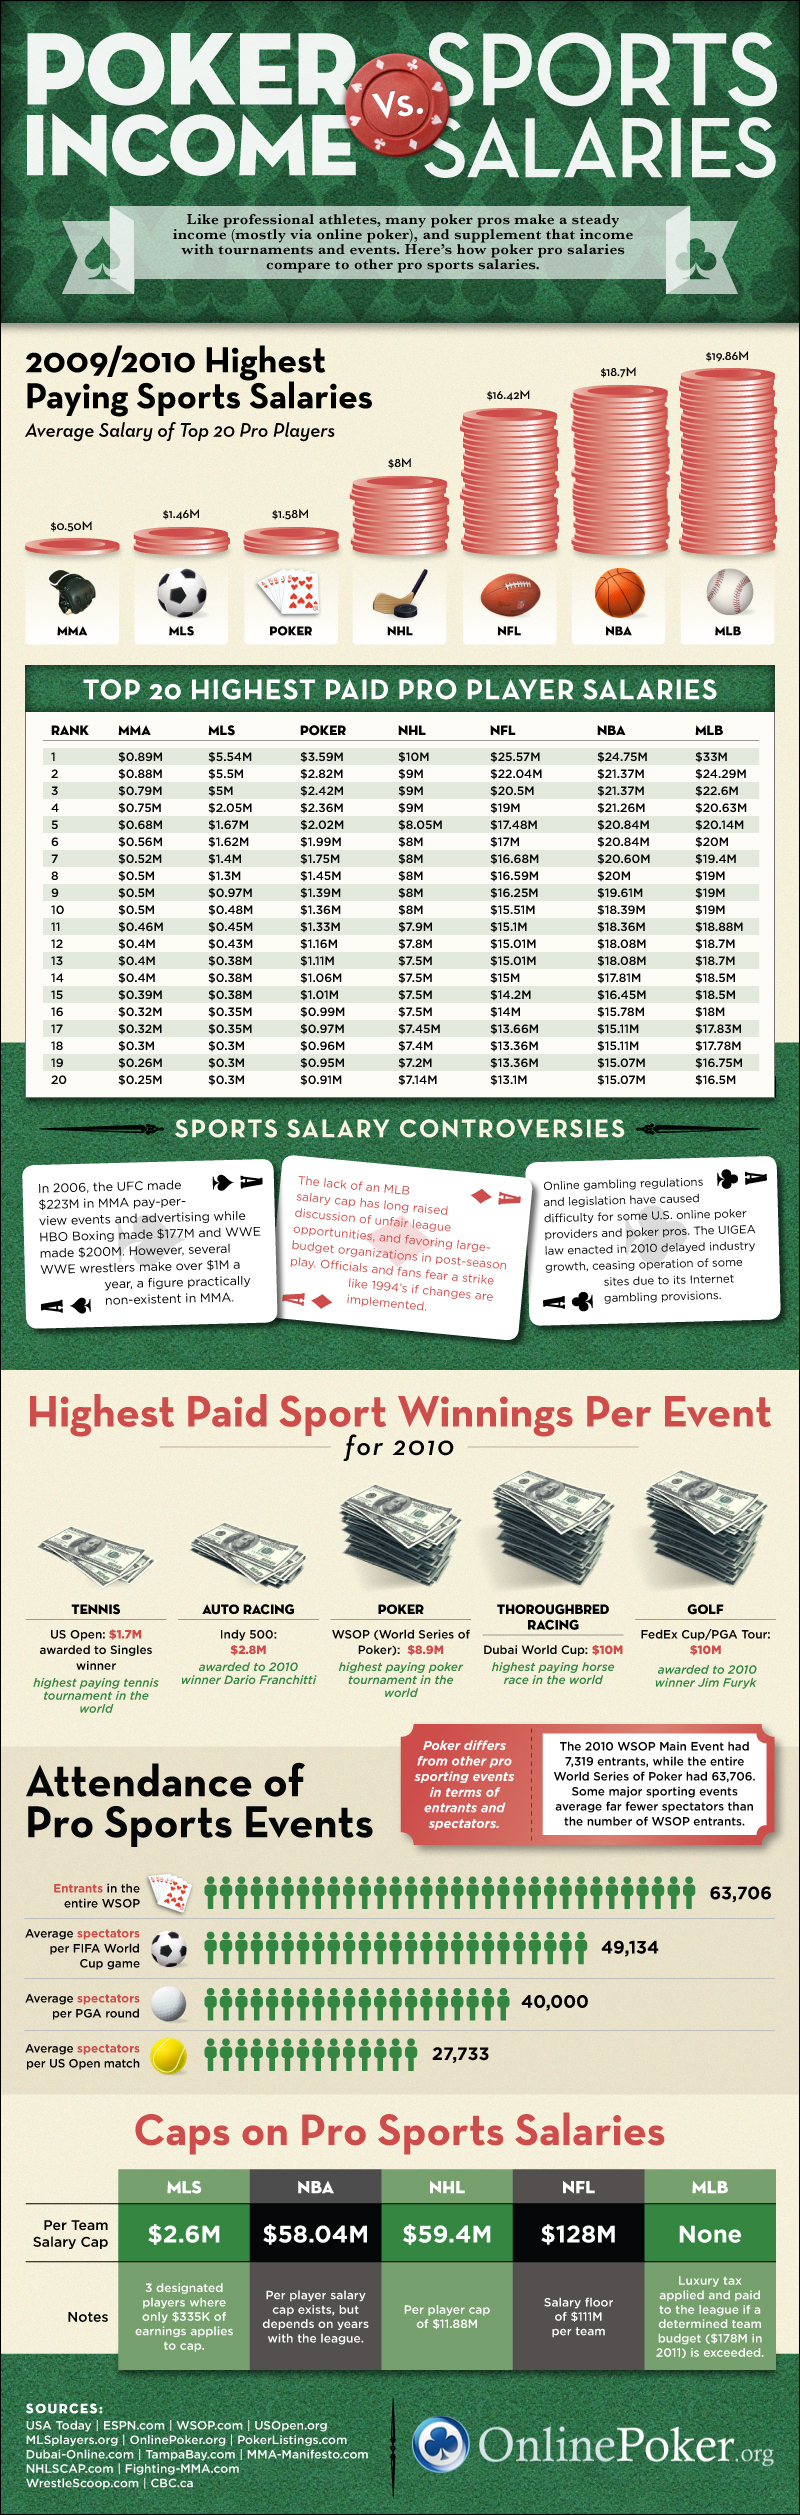 Poker Income vs Sports Salaries Infographic